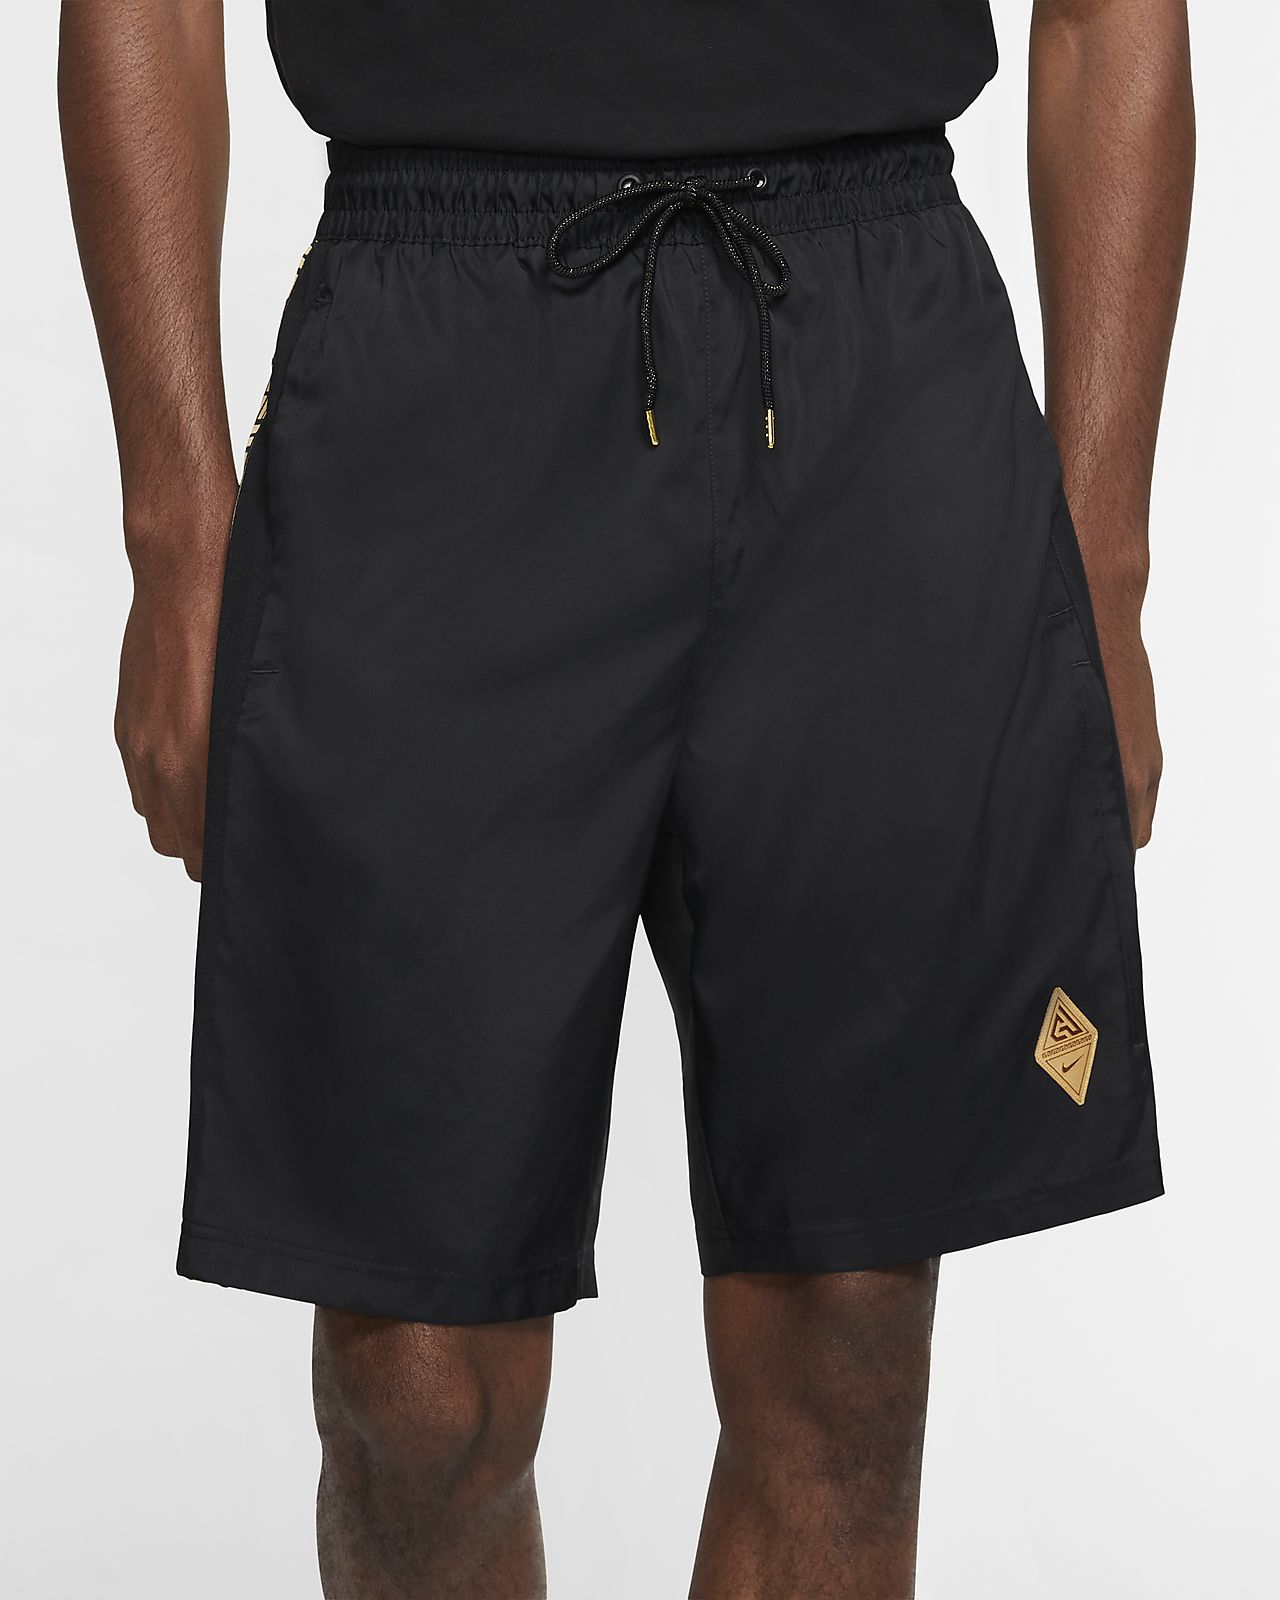 Giannis 'Coming to America' Men's Basketball Track Shorts